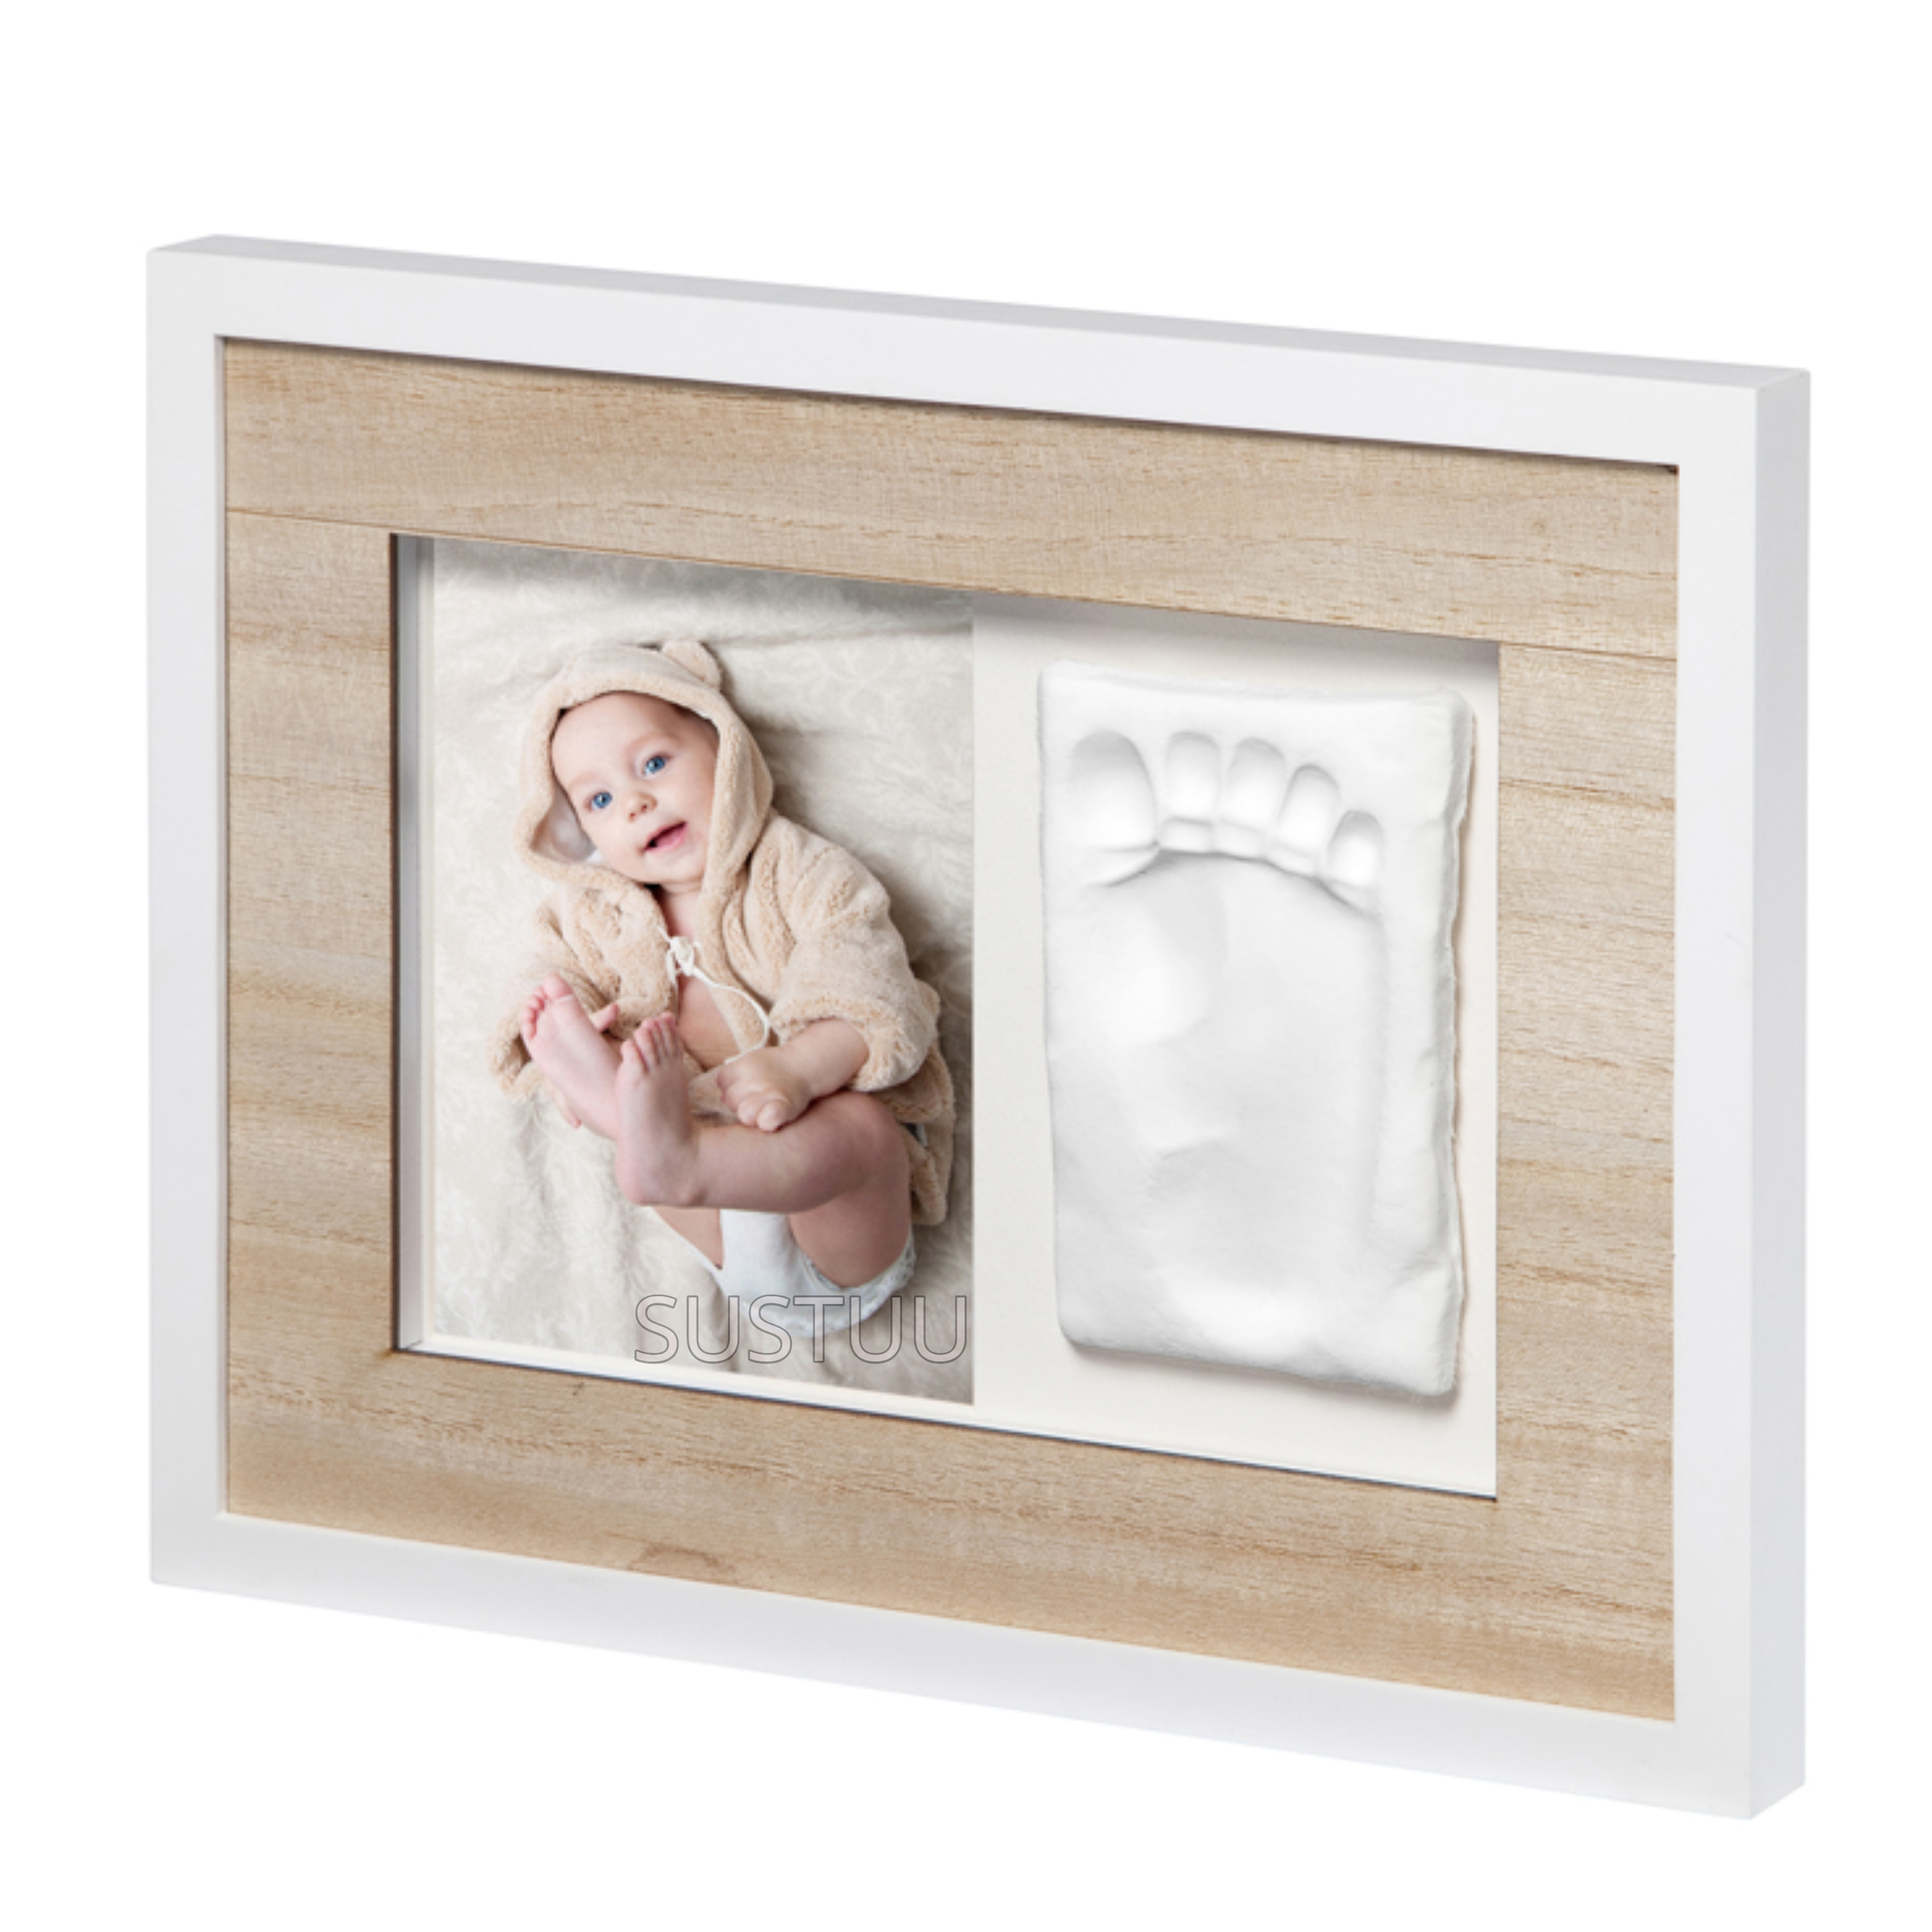 Baby Art Tiny Style Touch Single Frame Wooden | Gift For Christening & Newborn